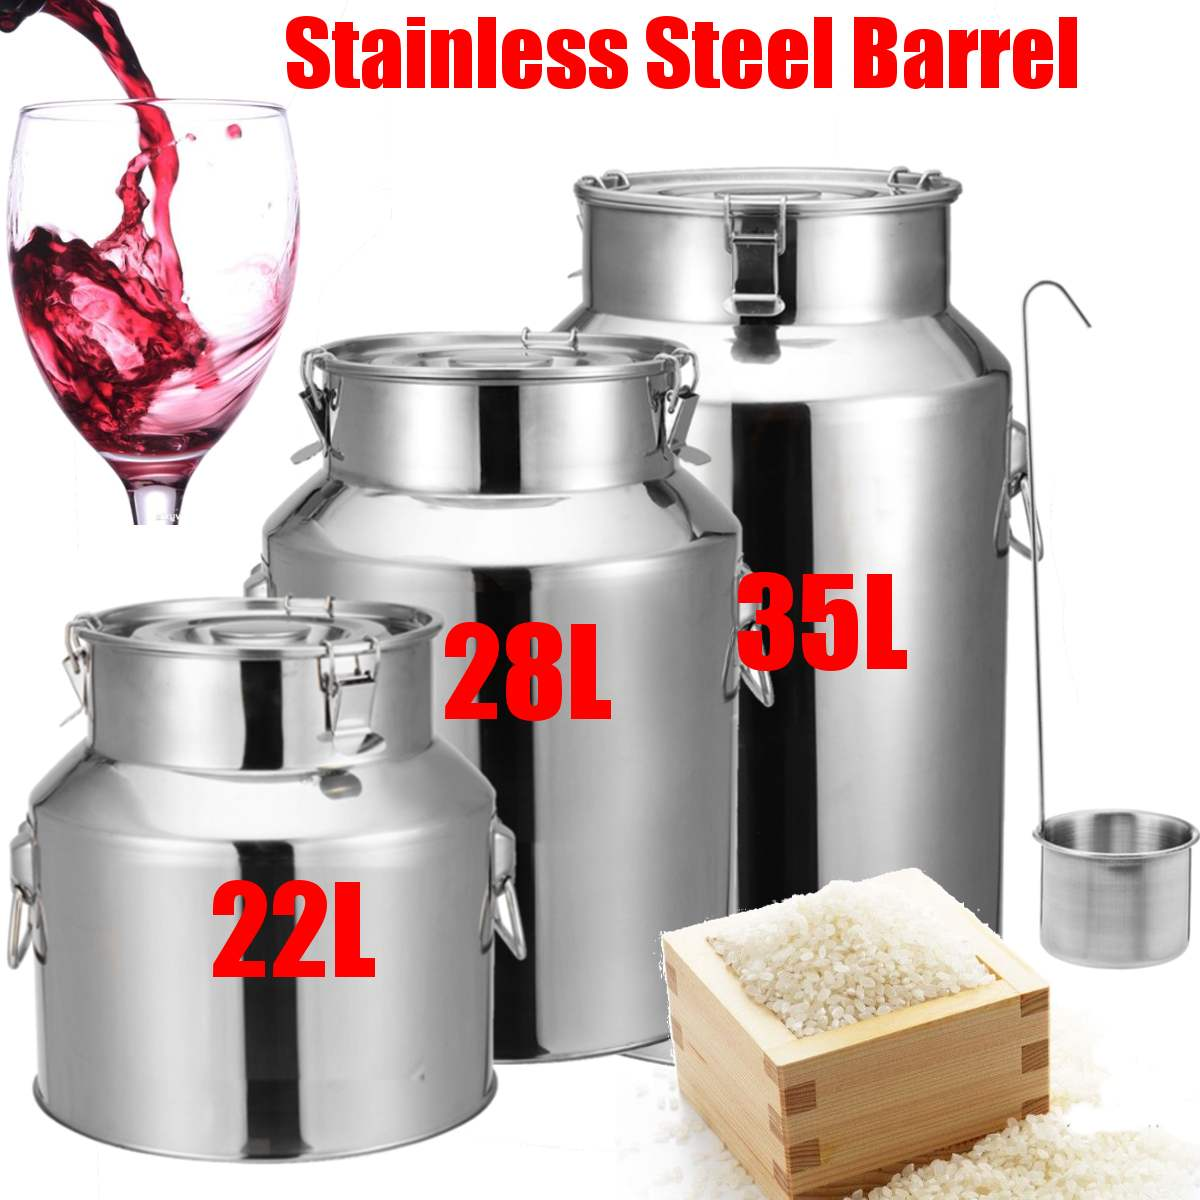 22/28/35L Stainless Steel Barrel Seal Beer Brewing Wine Beer Whiskey Rum Barrel Port container Storage Oil Milk Rice Barrel|Beer Brewing| |  - title=